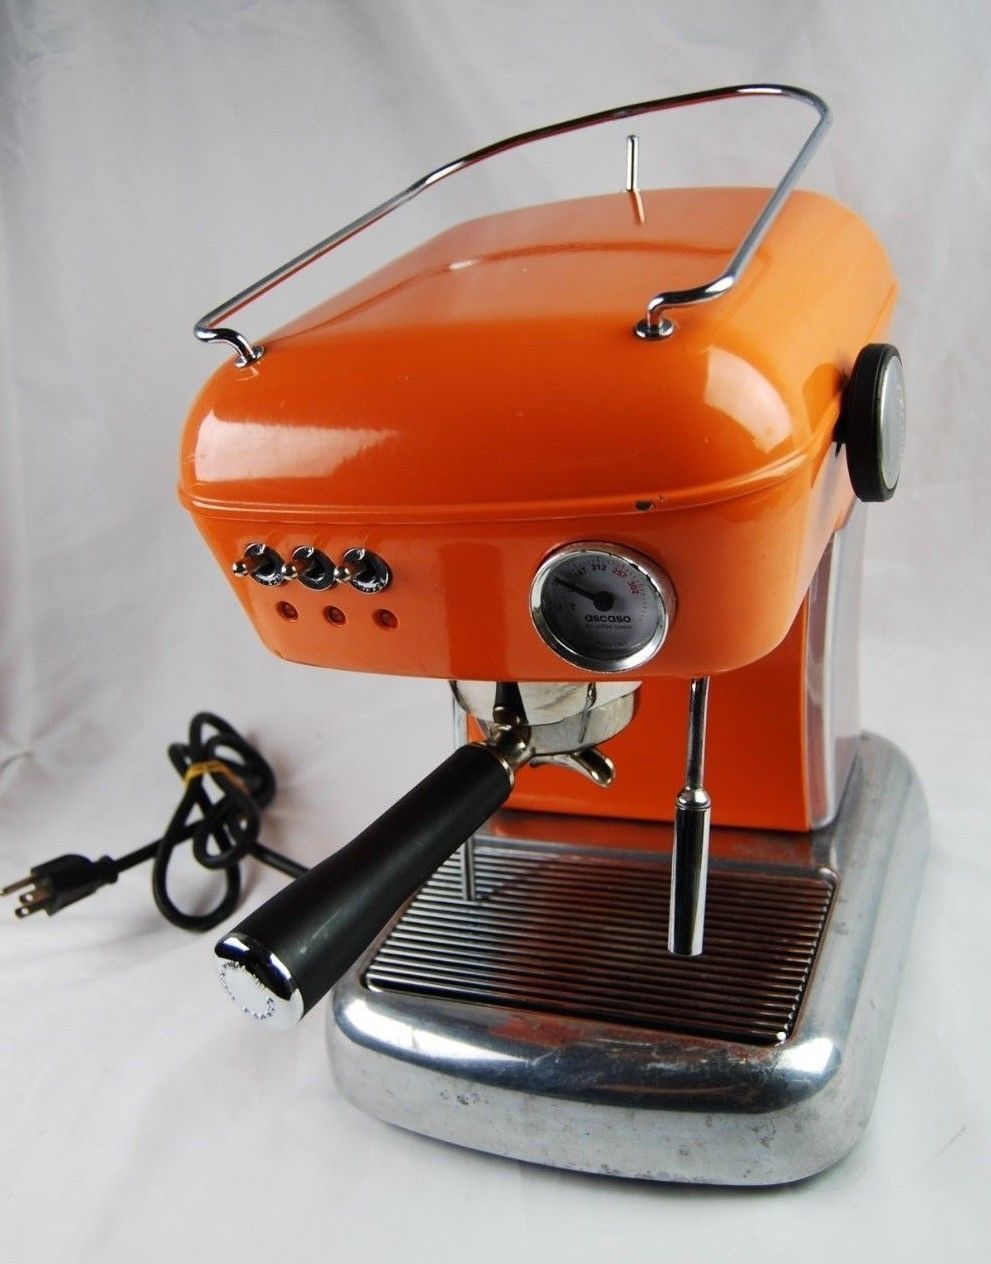 Ascaso Dream Up Orange With Accesories Tested Works Ascaso Dream Espresso Machine Accesories It Works